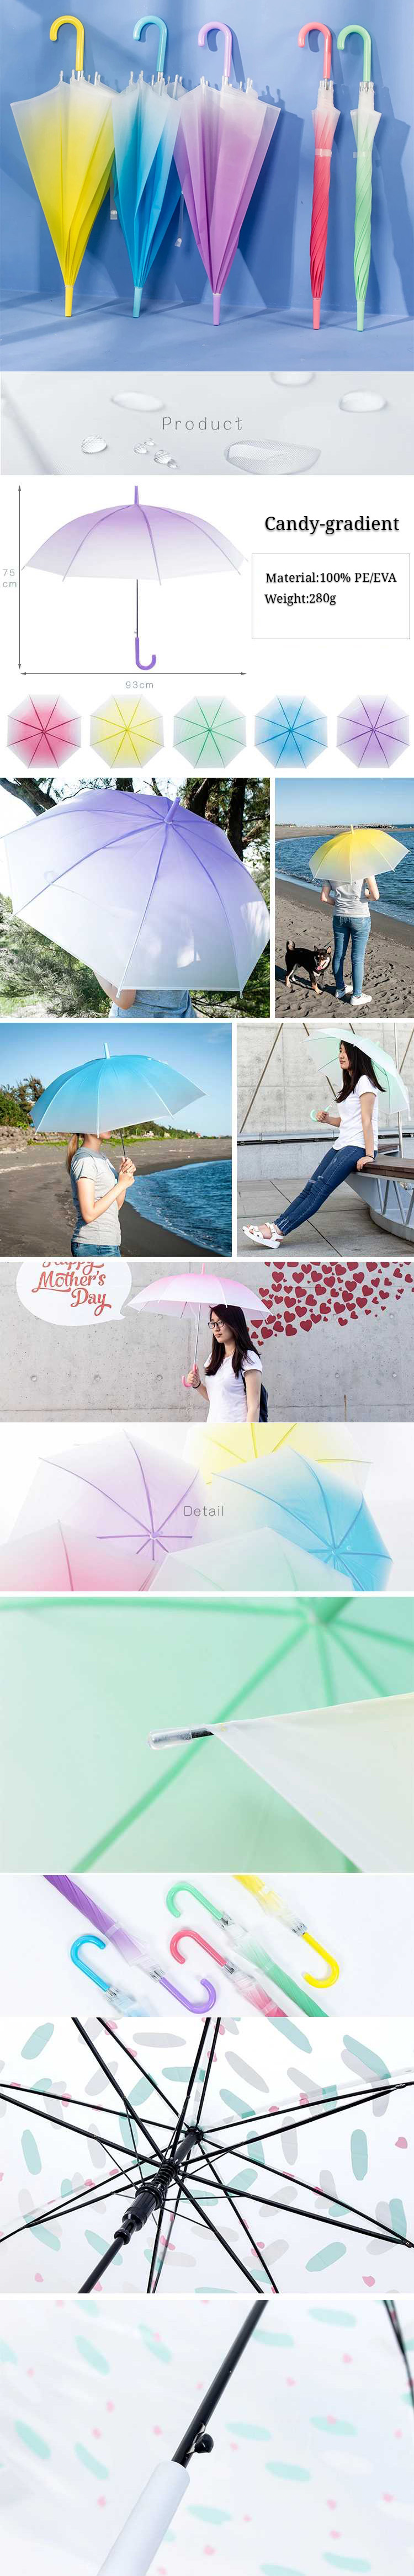 Kinderwagen umbrellas outdoor,transparent umbrella with gradient color